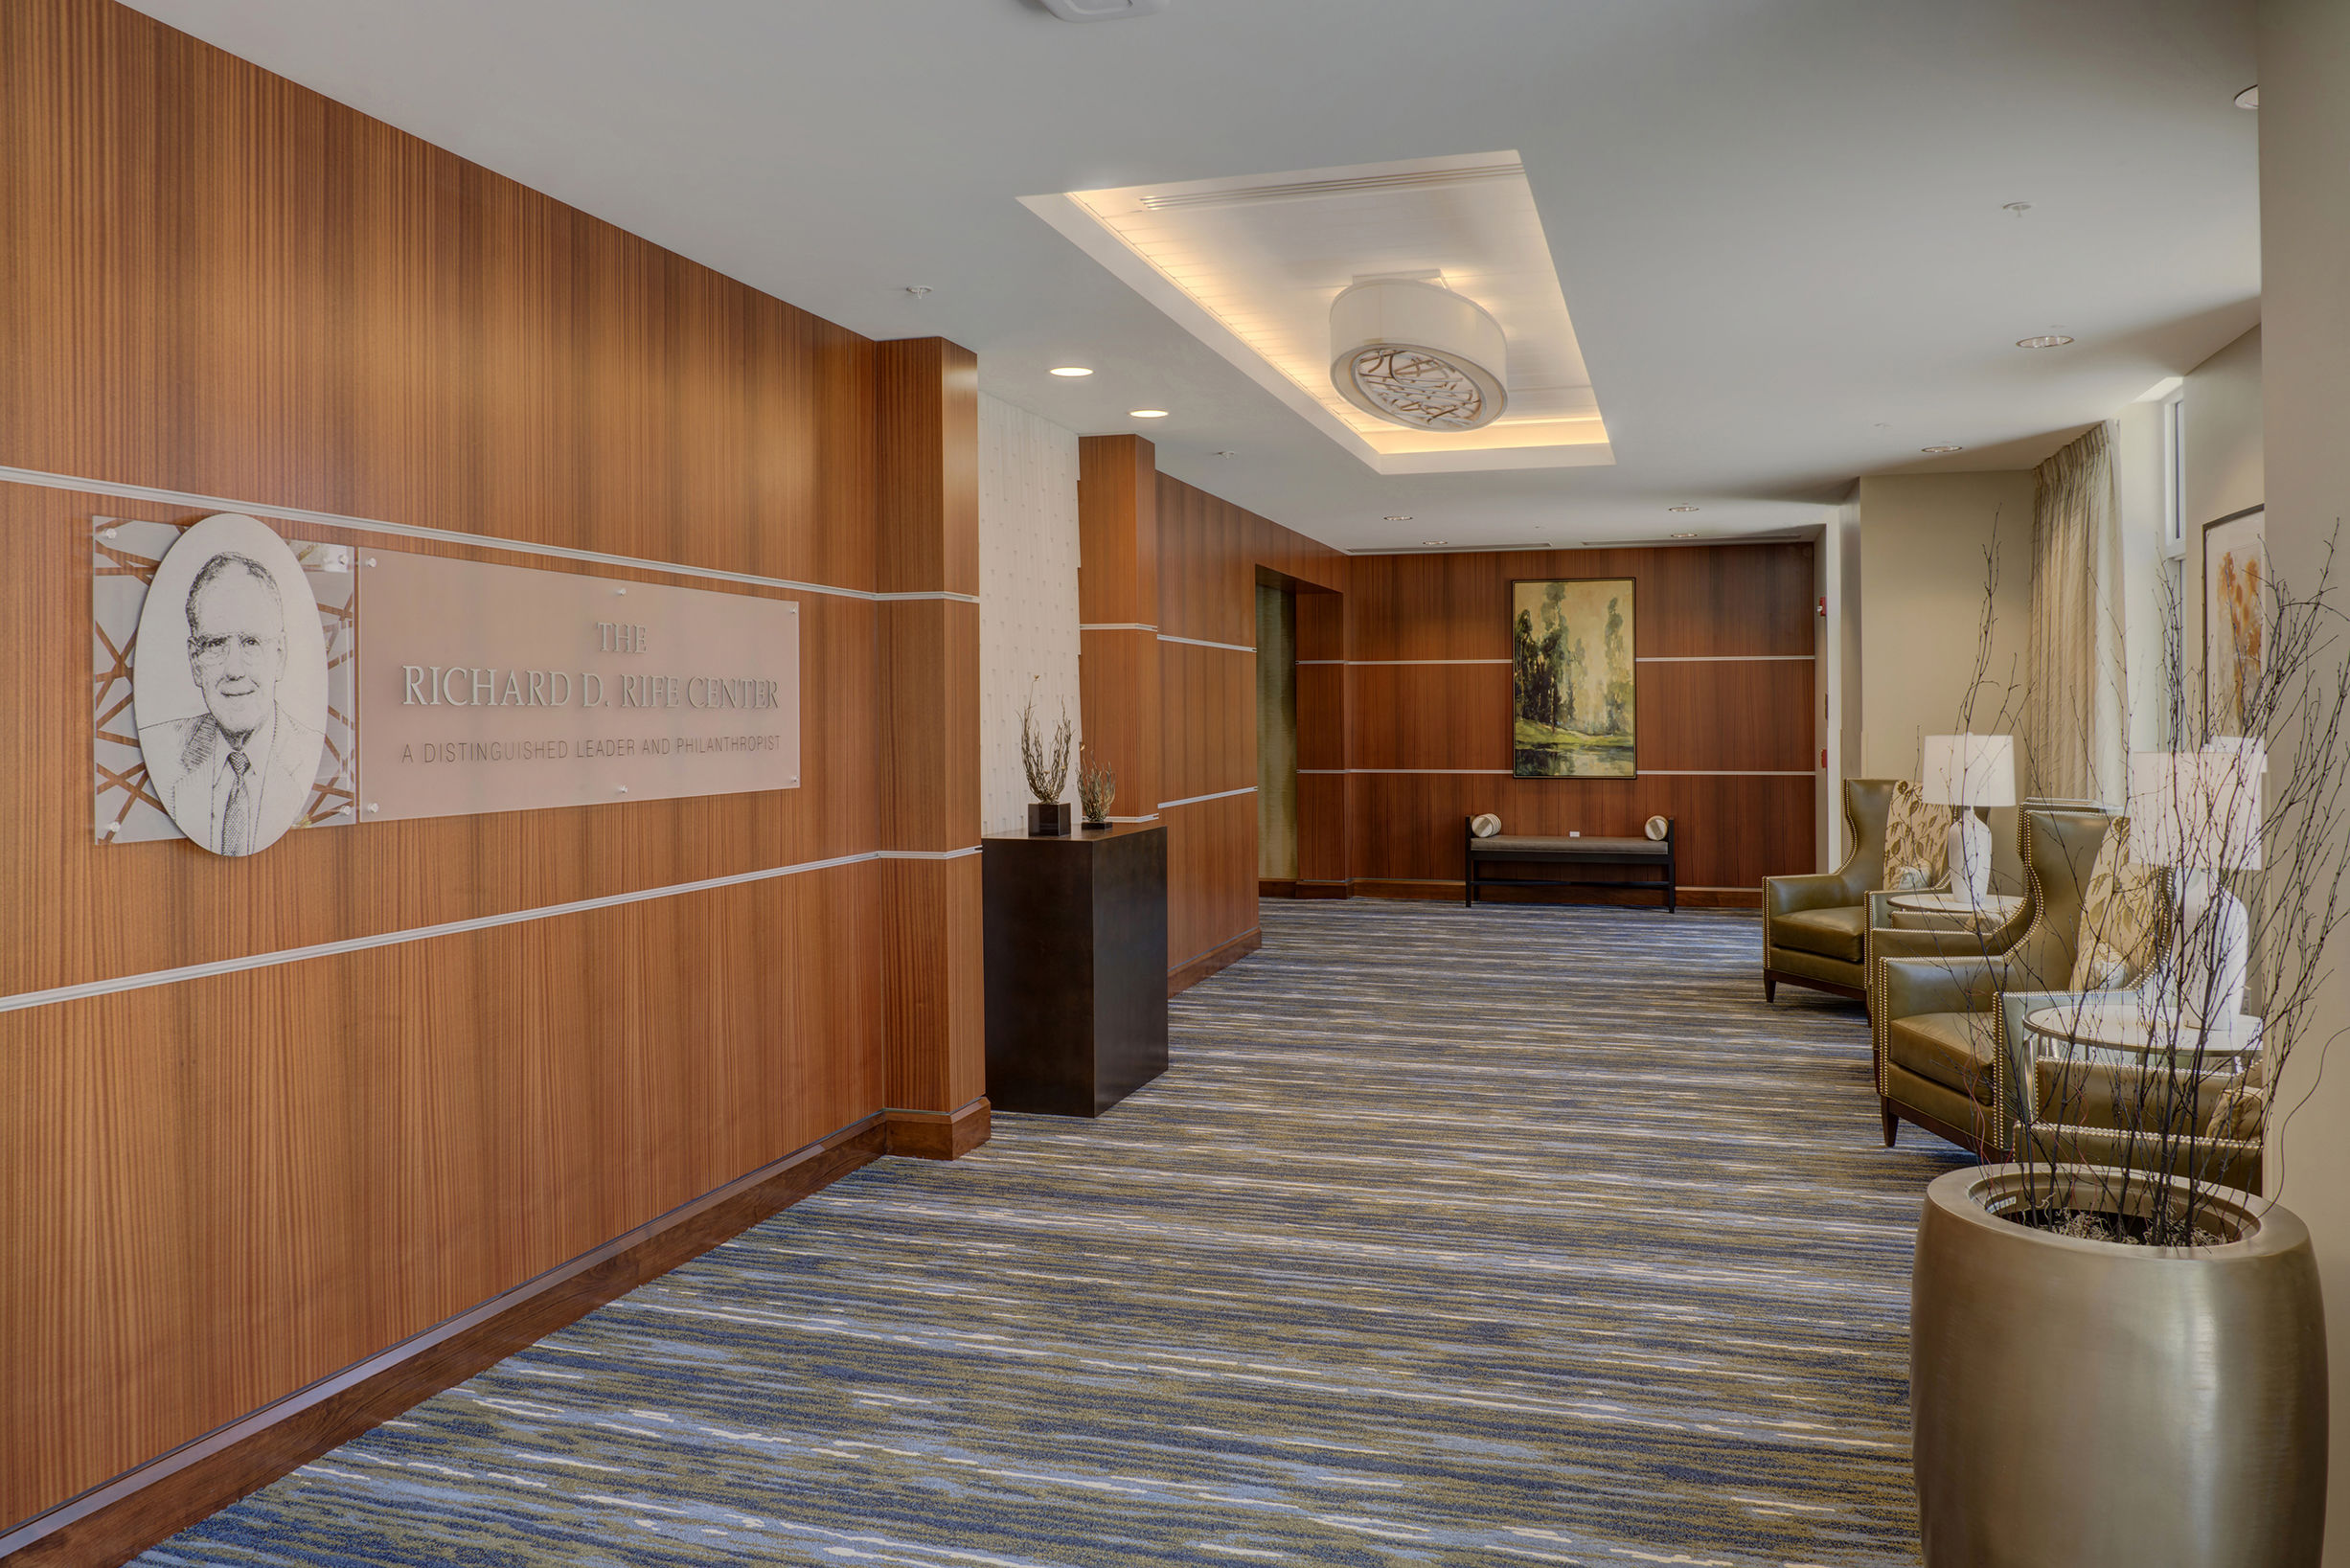 Rife Center Mechanicsburg Pennsylvania lobby vesitibule THW senior living architects